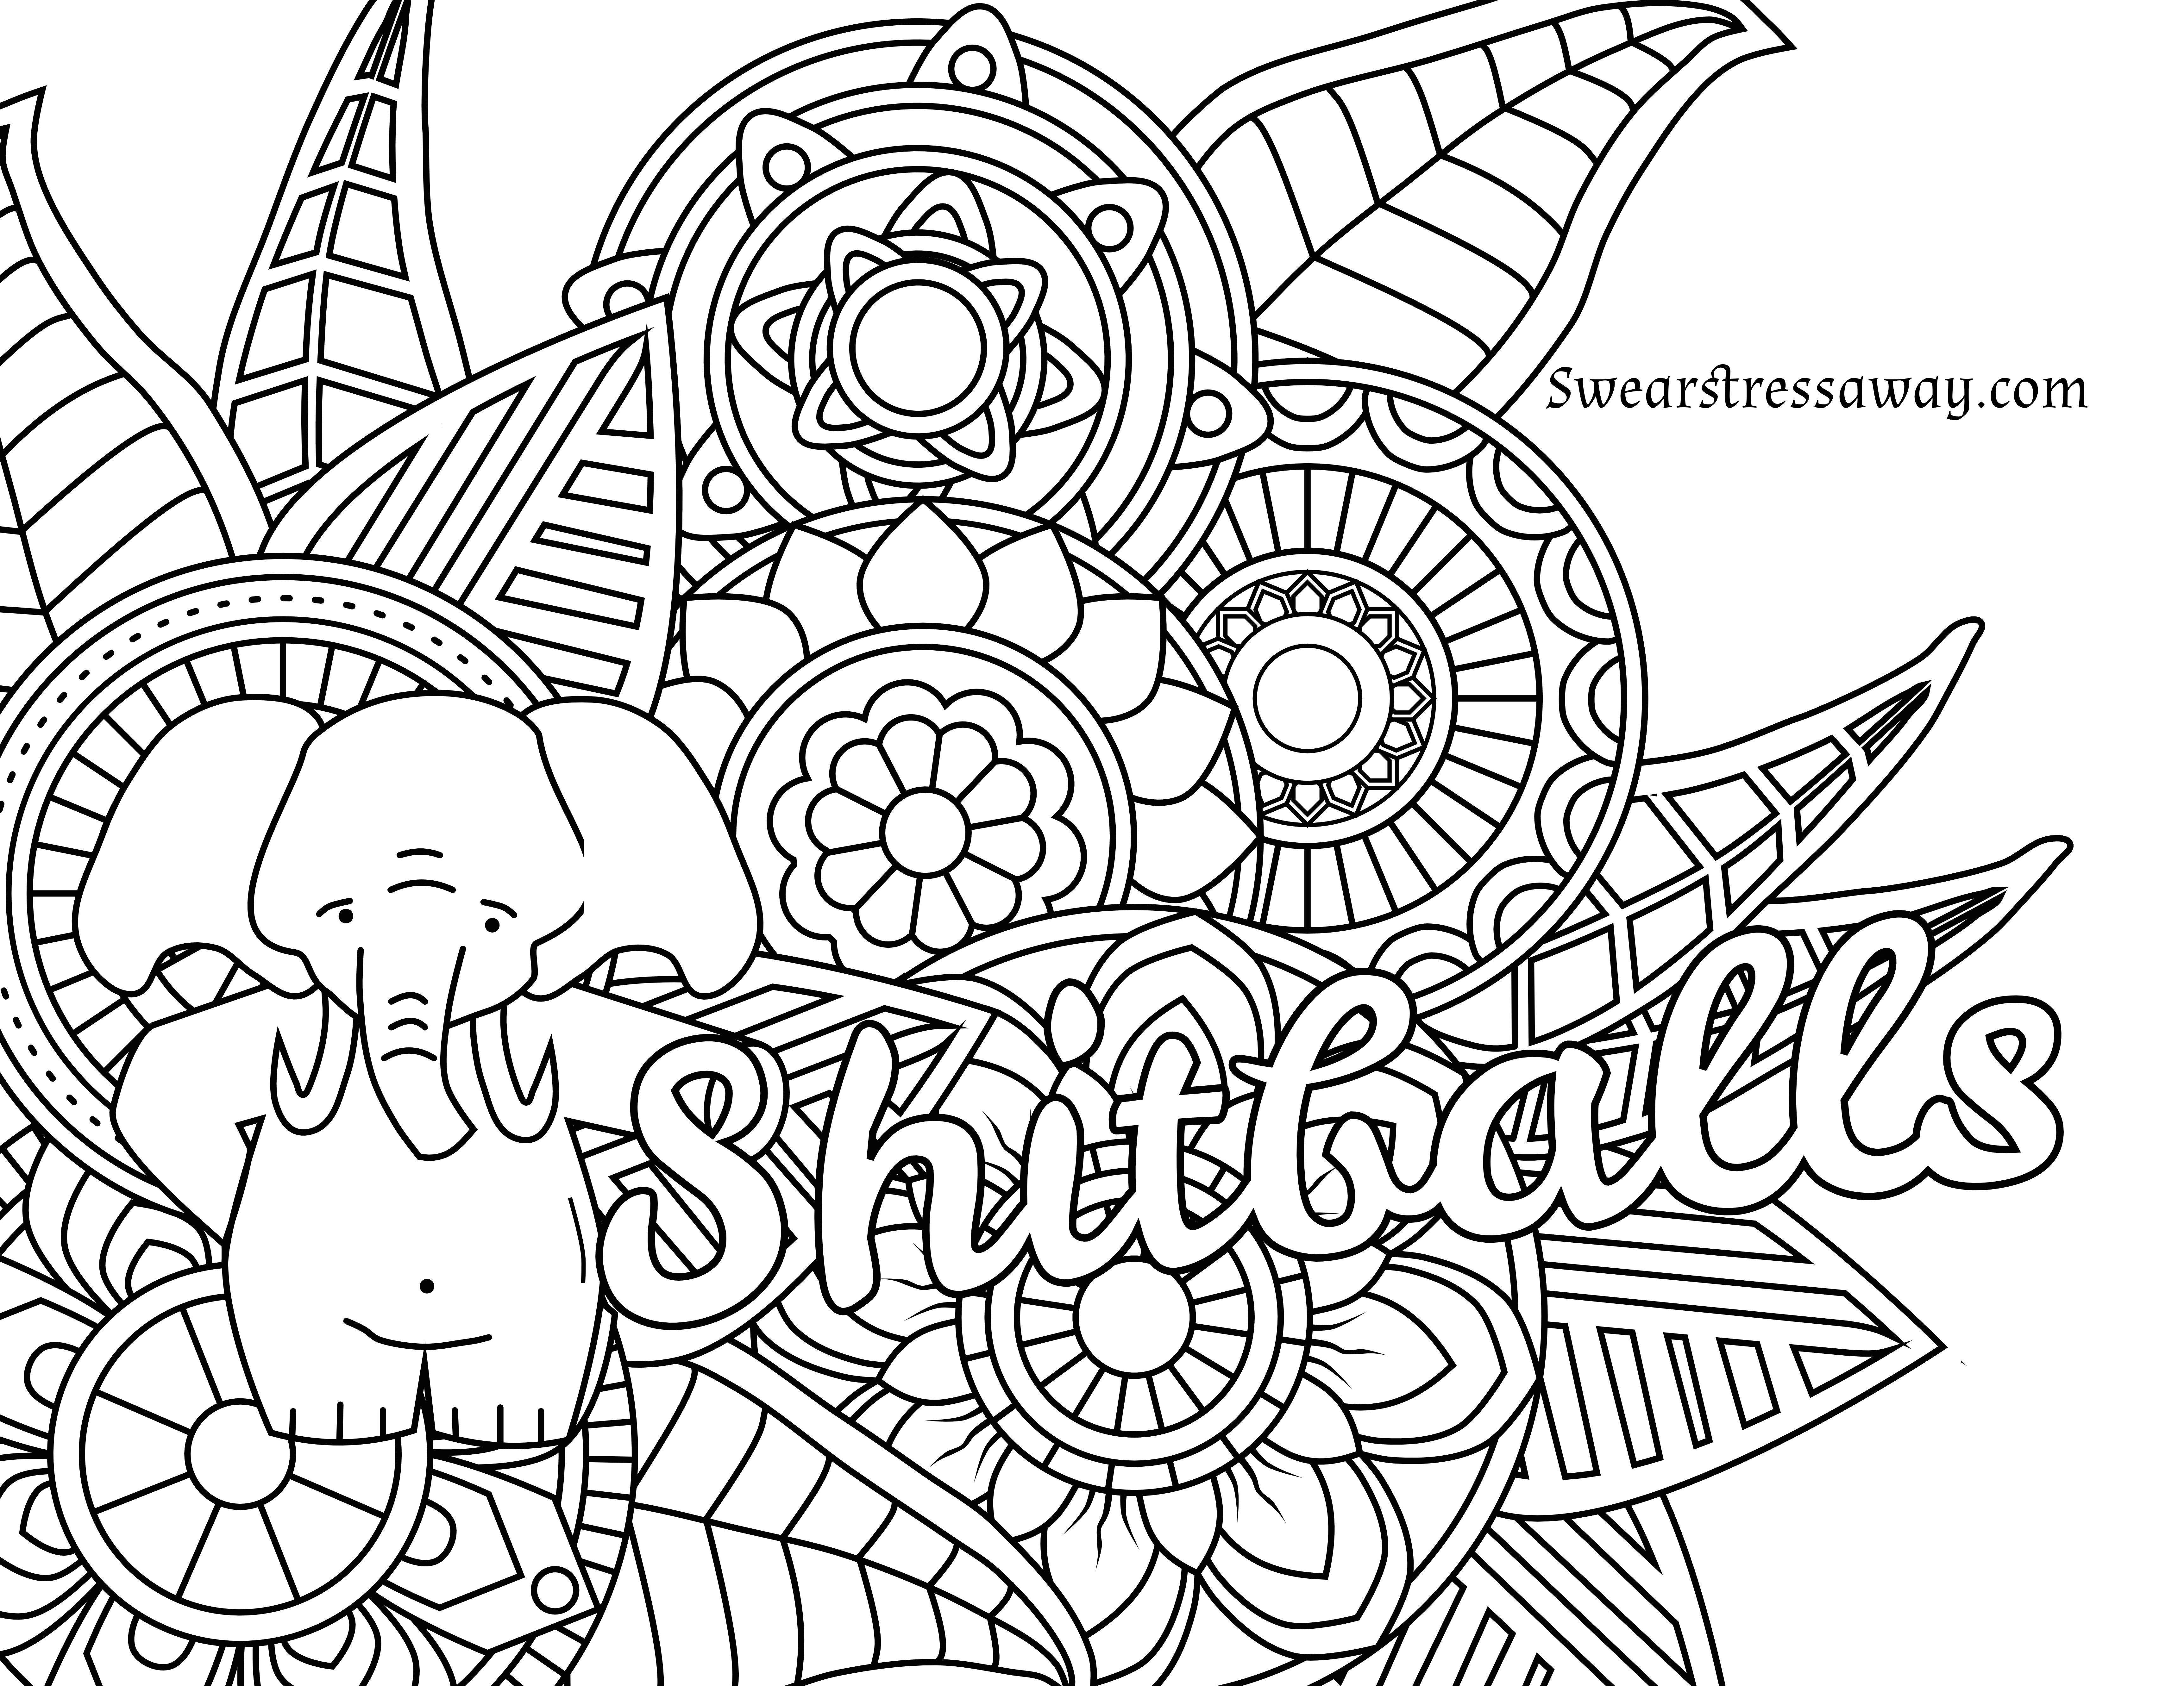 Bad word coloring pages - Free Printable Coloring Page Shitballs Swear Word Coloring Page Sweary Coloring Page